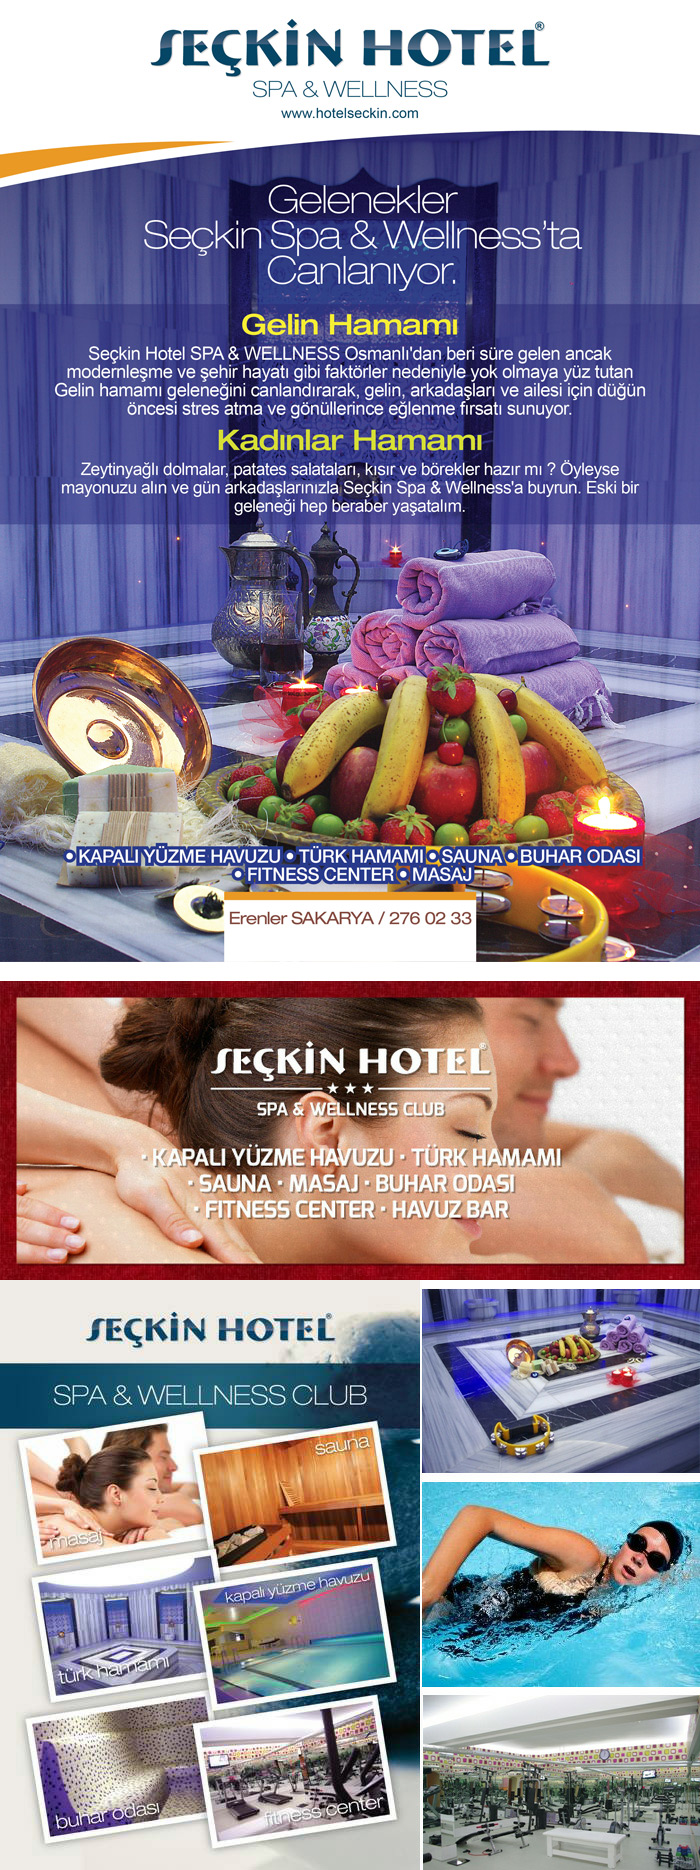 Seçkin Hotel Spa & Wellness